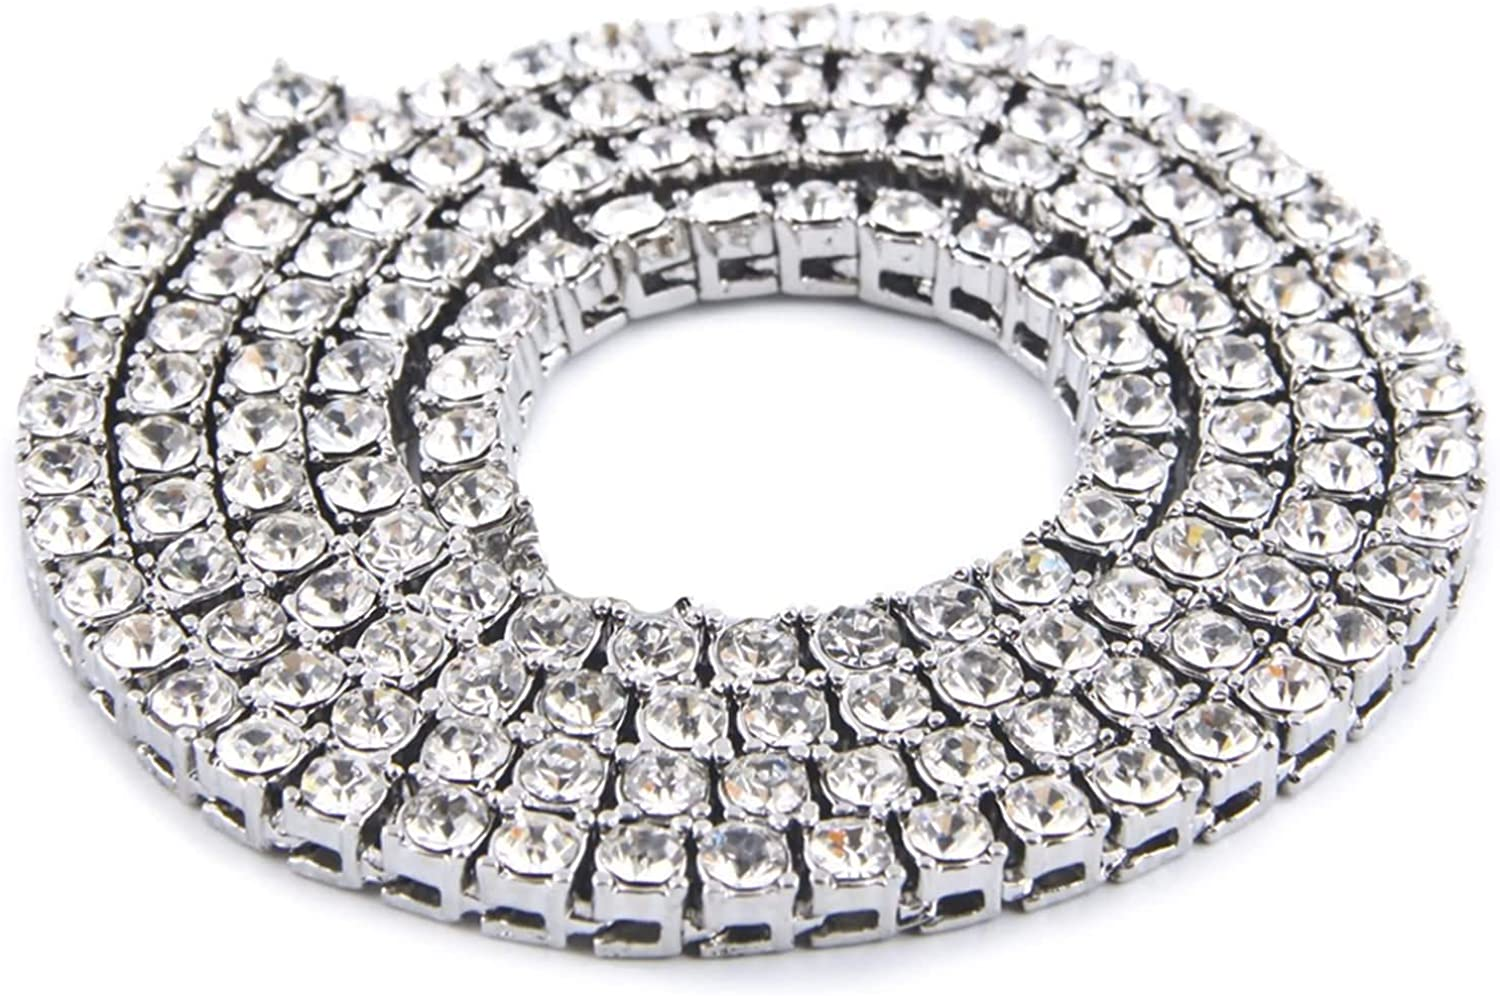 Alloy Box Chain Necklace for Men Aokarry Stylish Mens Tennis Chain